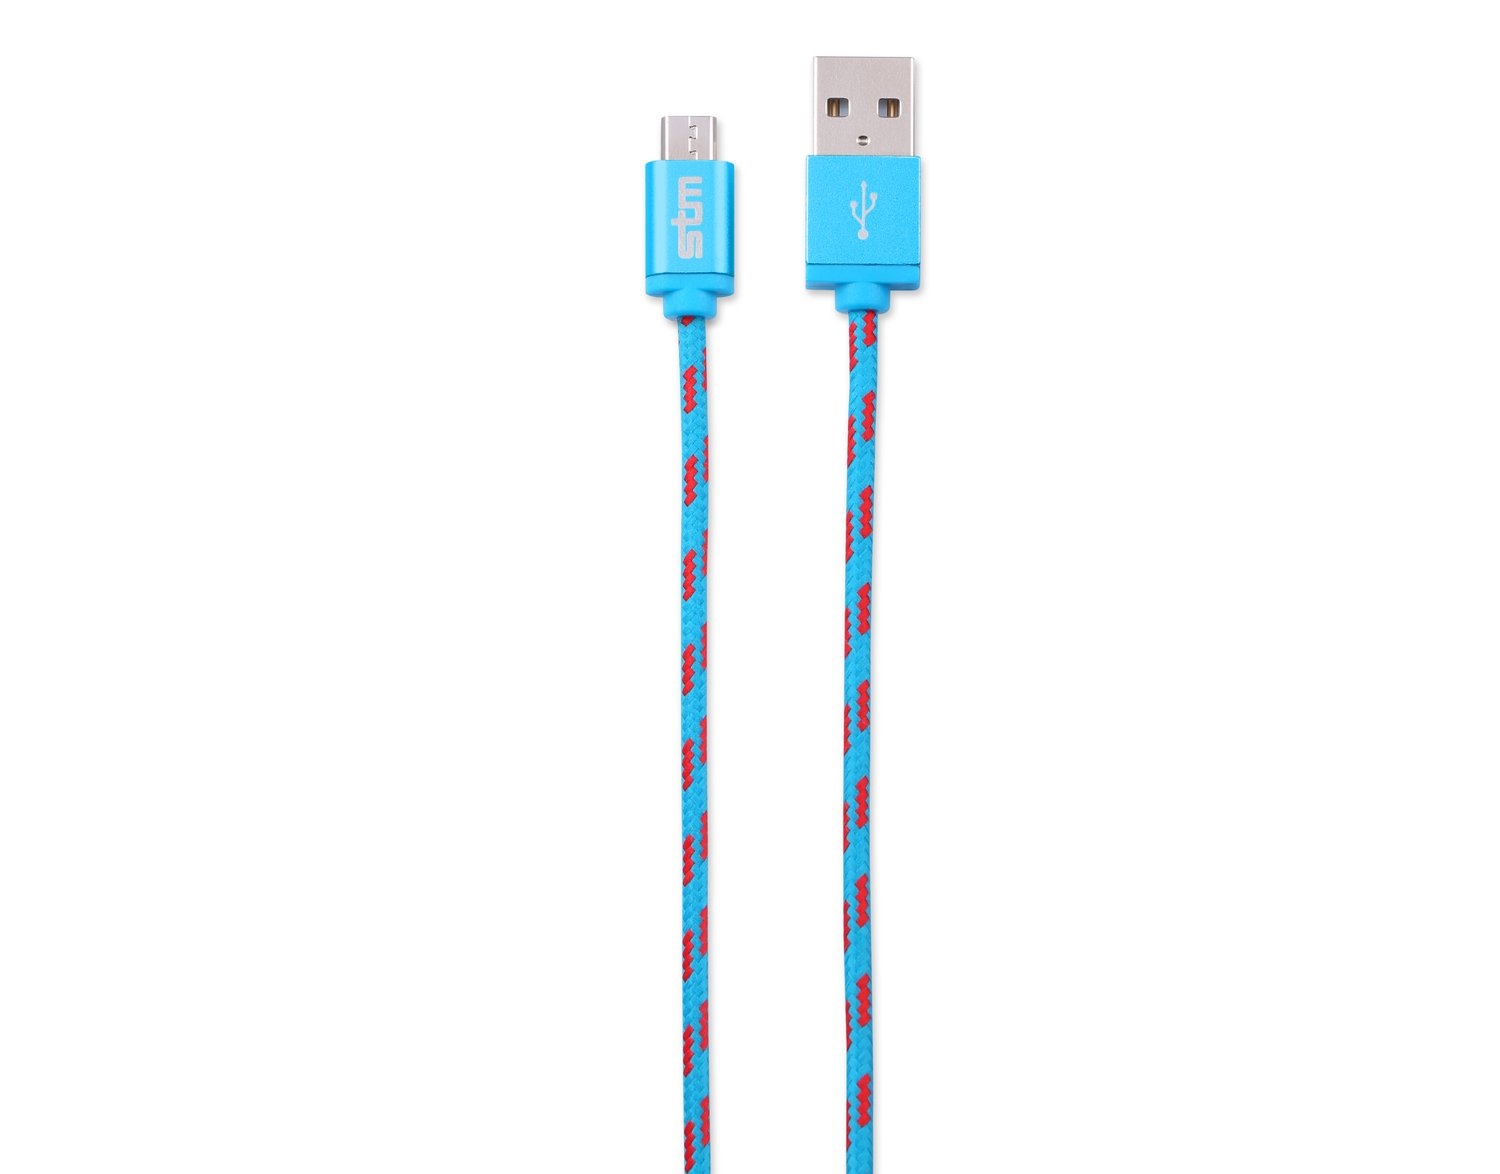 STM Elite Cable, Braided Micro USB Cable (1m) - Blue (stm-931-099Z-20)